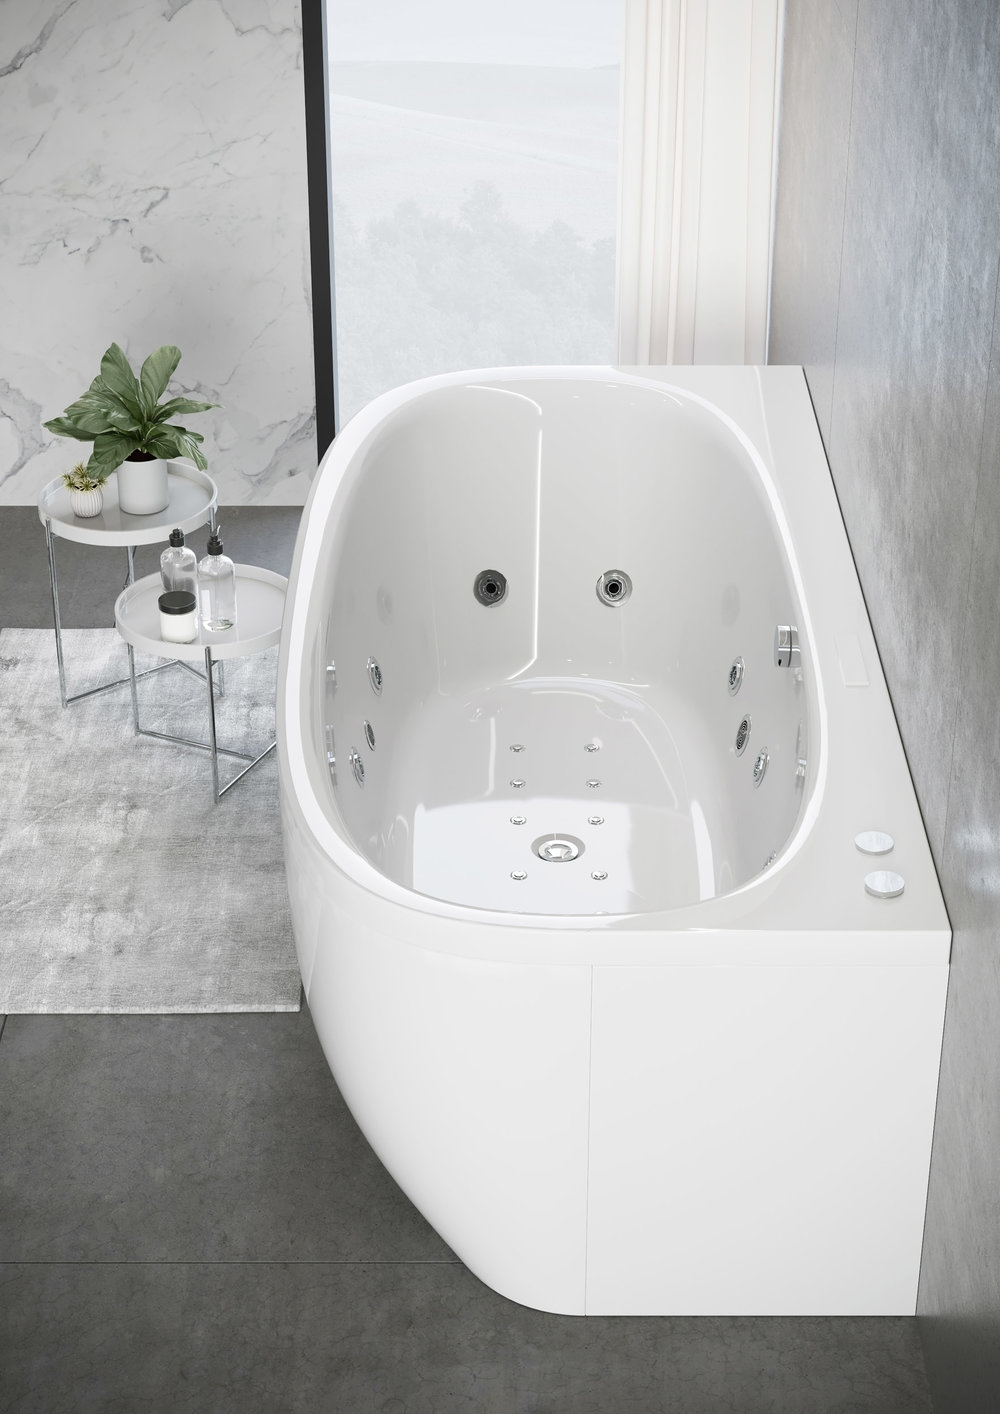 Jaquar Bathroom Bathtub Watermassage Whirpool Freestanding Arc Product Design